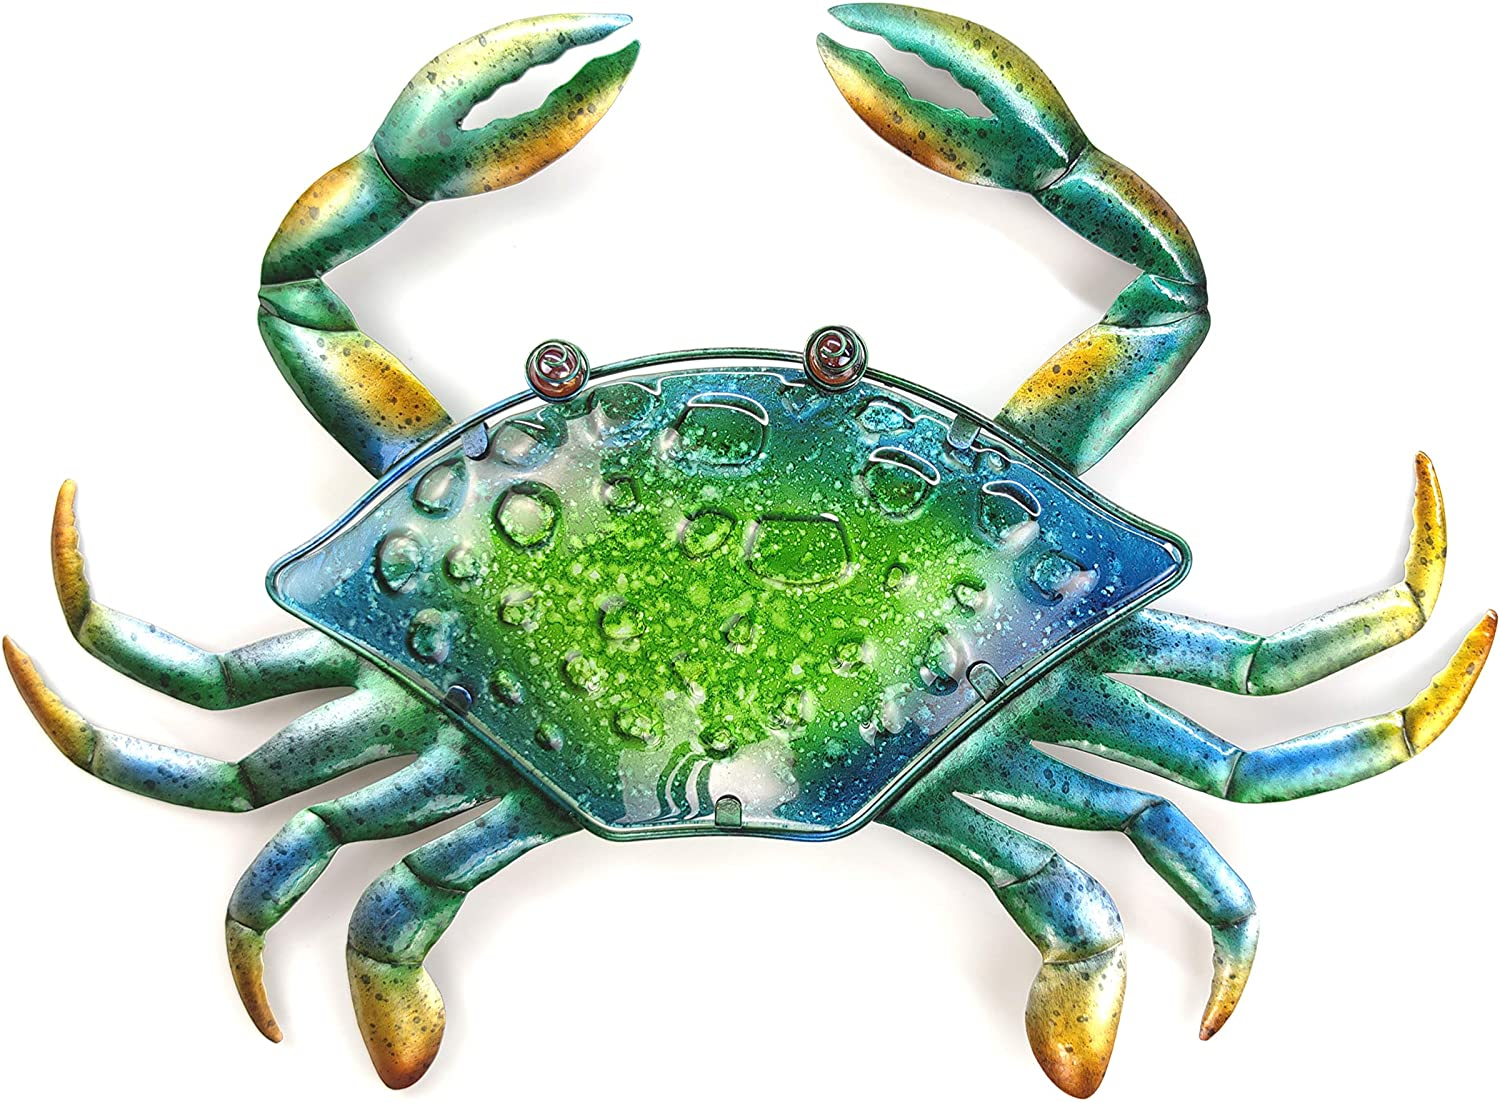 JOYBee 18Inch Large Metal Crab Wall art Decor,Decoration For Outdoor Indoor ,Nautical Hanging Art Blue Green Stained Glass With Metal Decorative Sculpture for Garden Pool Patio Balcony Kitchen or Bathroom